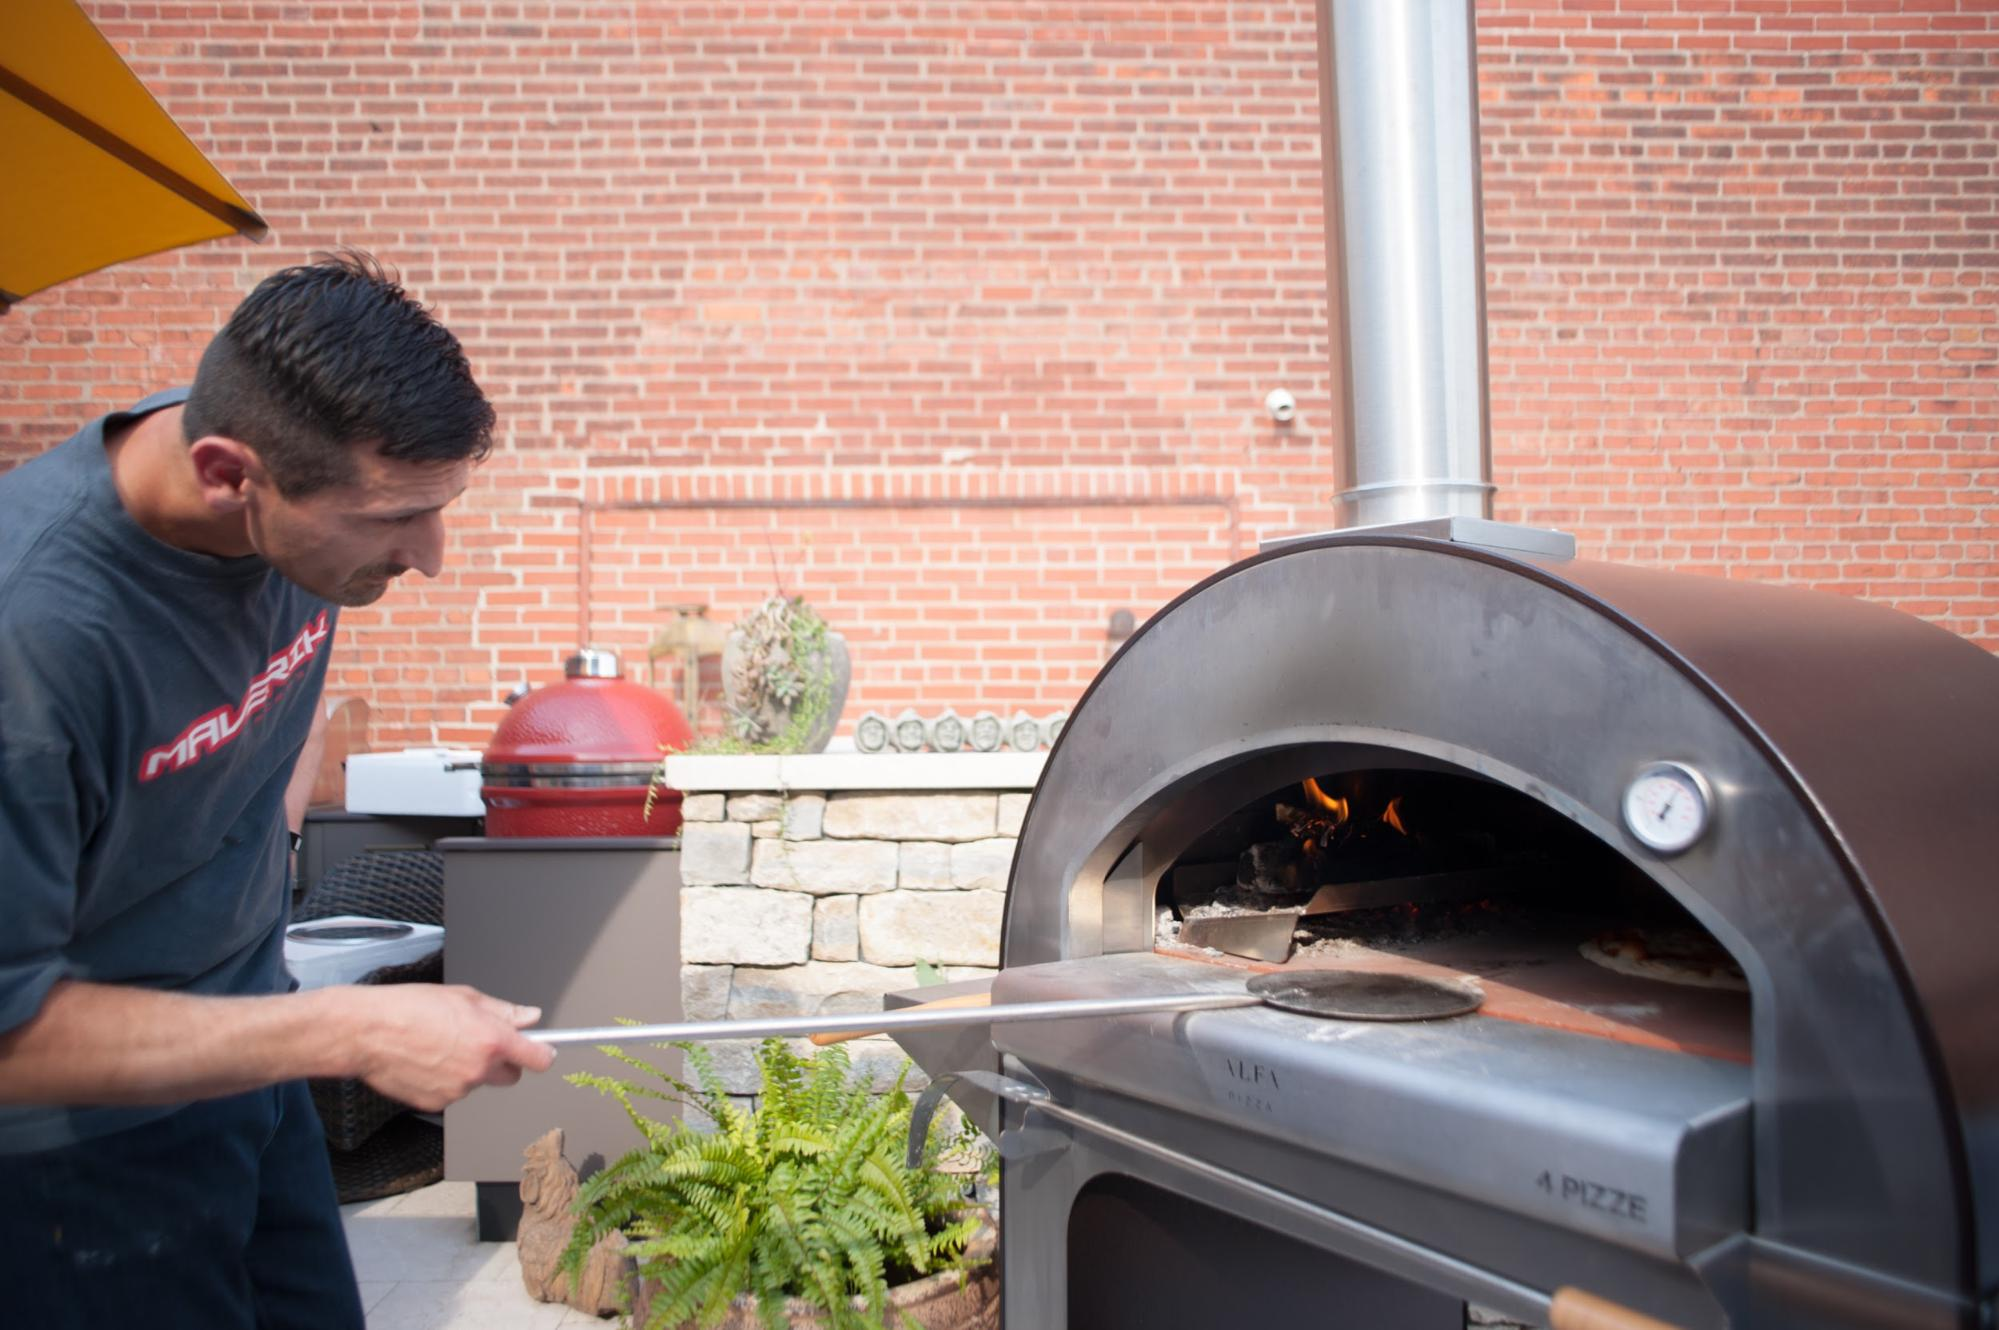 Man tending to pizza in ALFA 4 Pizze oven